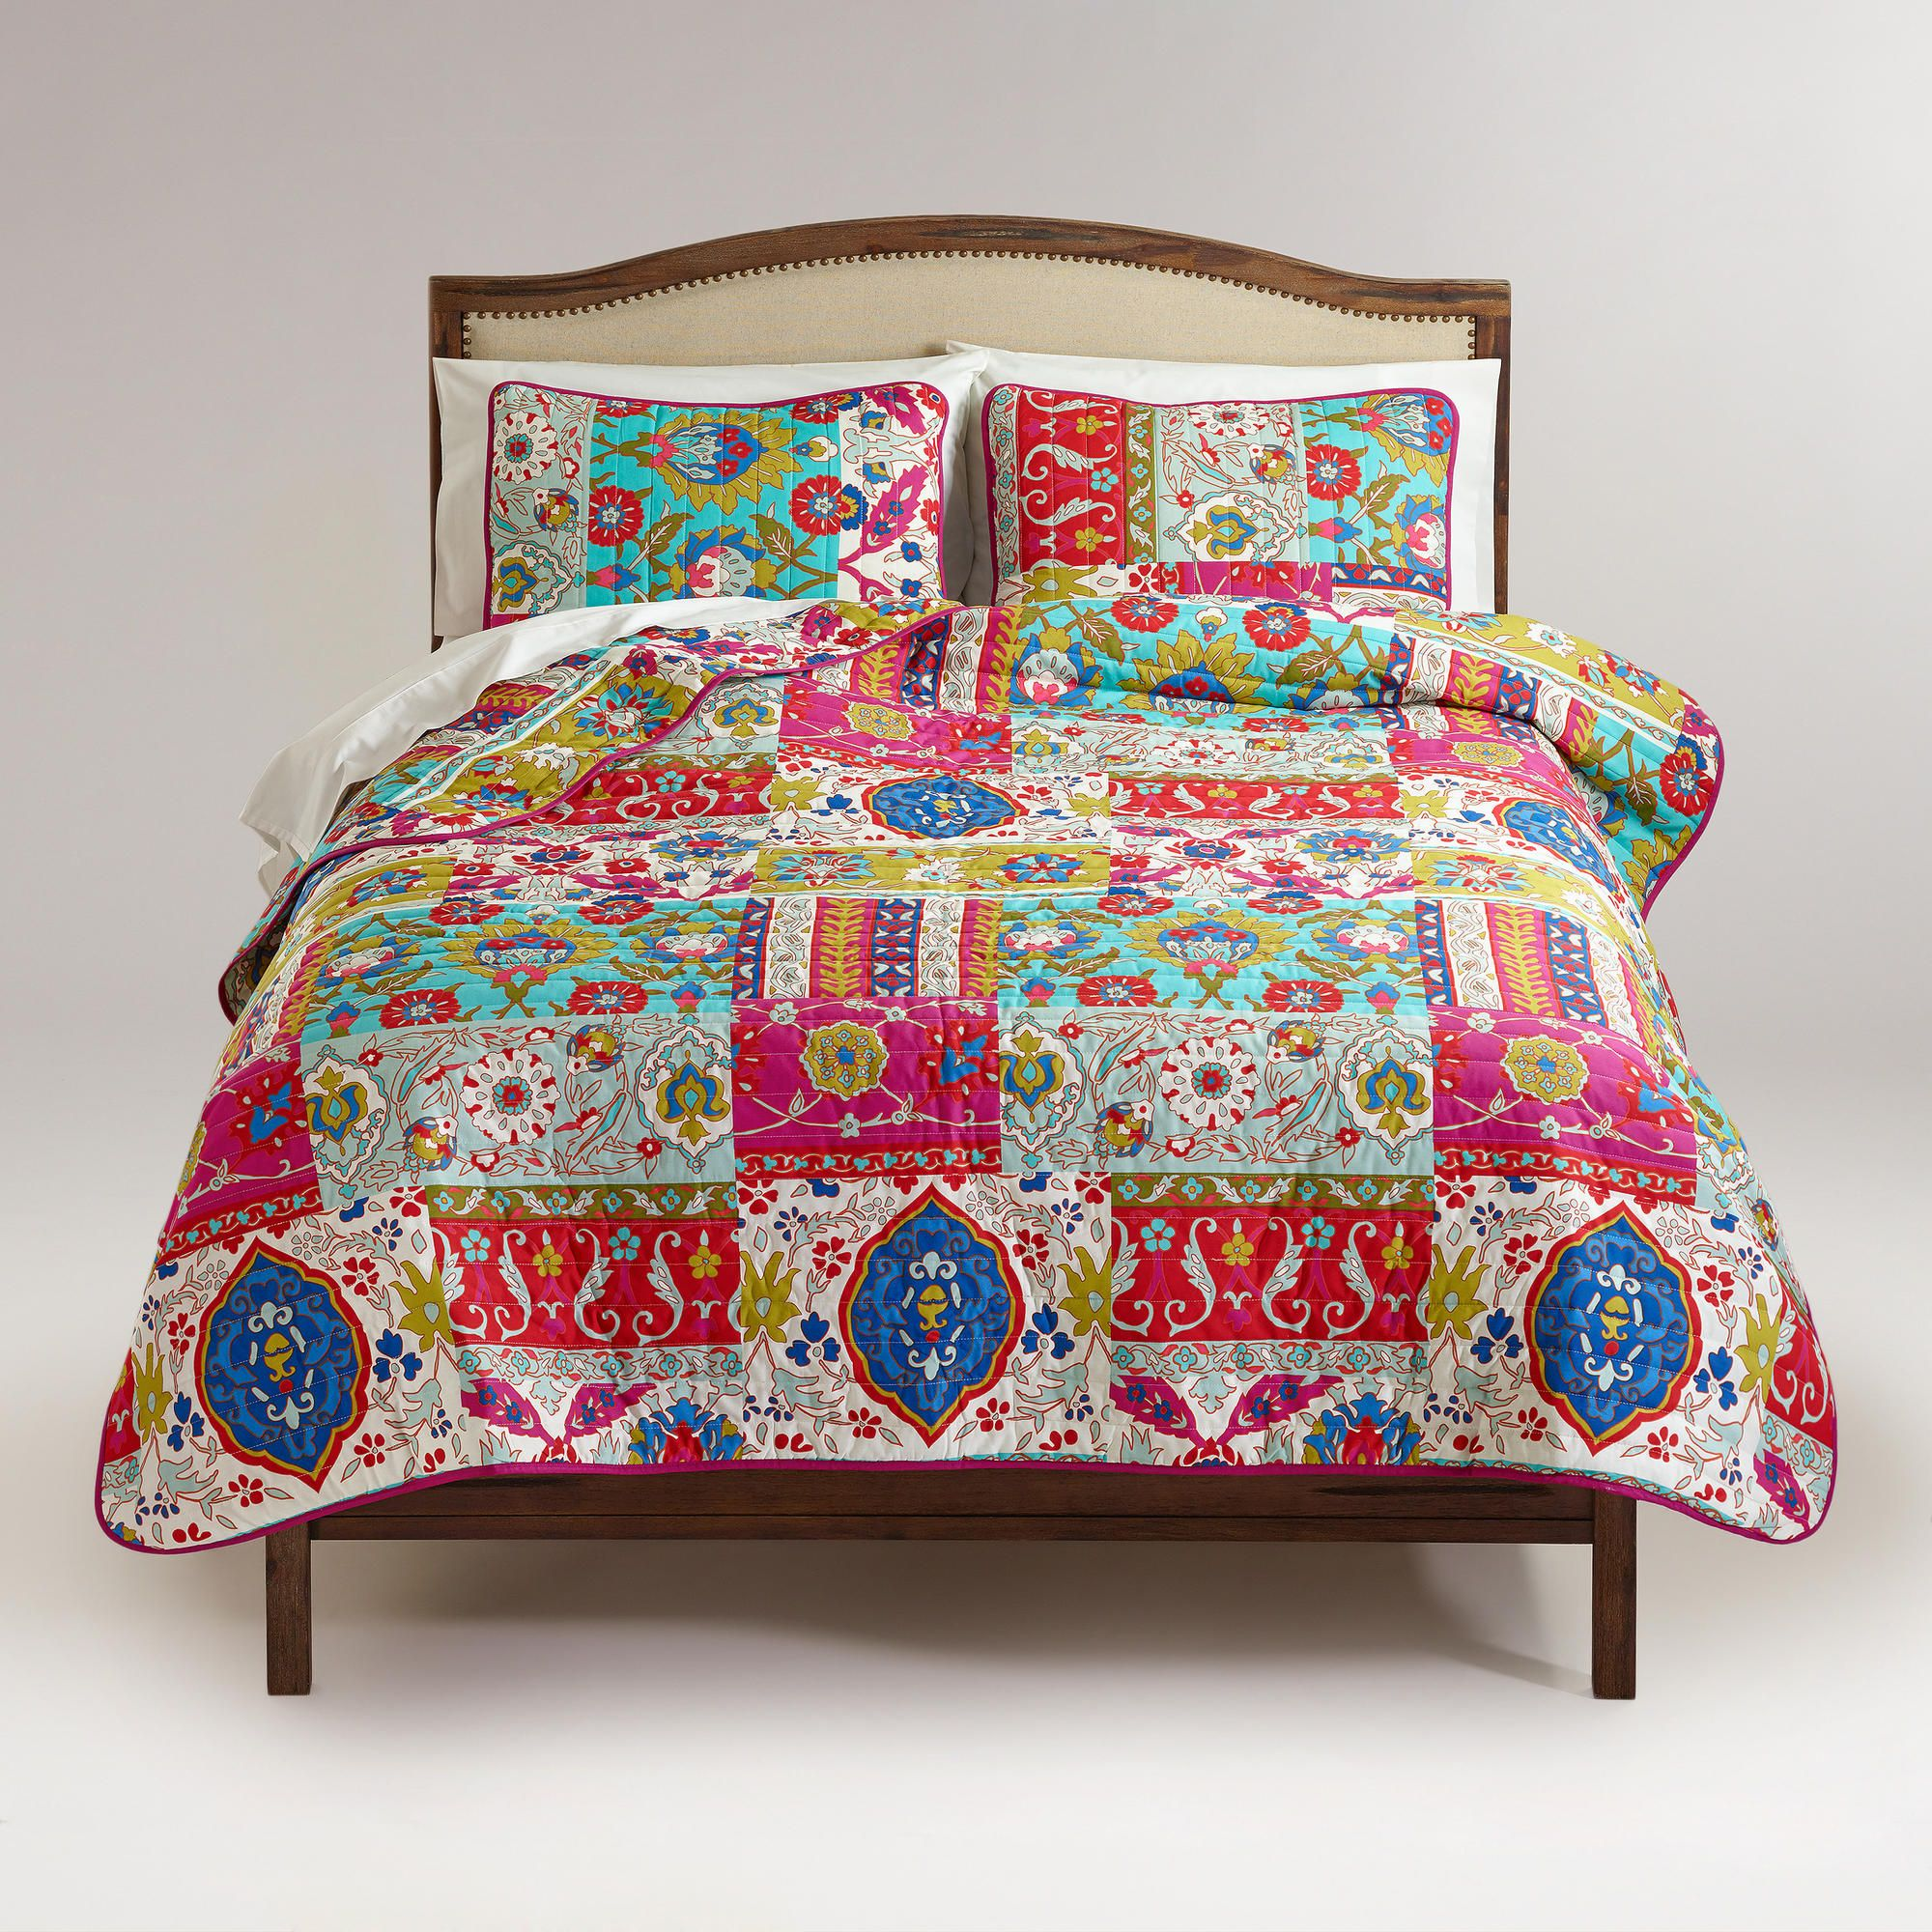 Istanbul Patchwork Bedding Collection World Market Home Decor